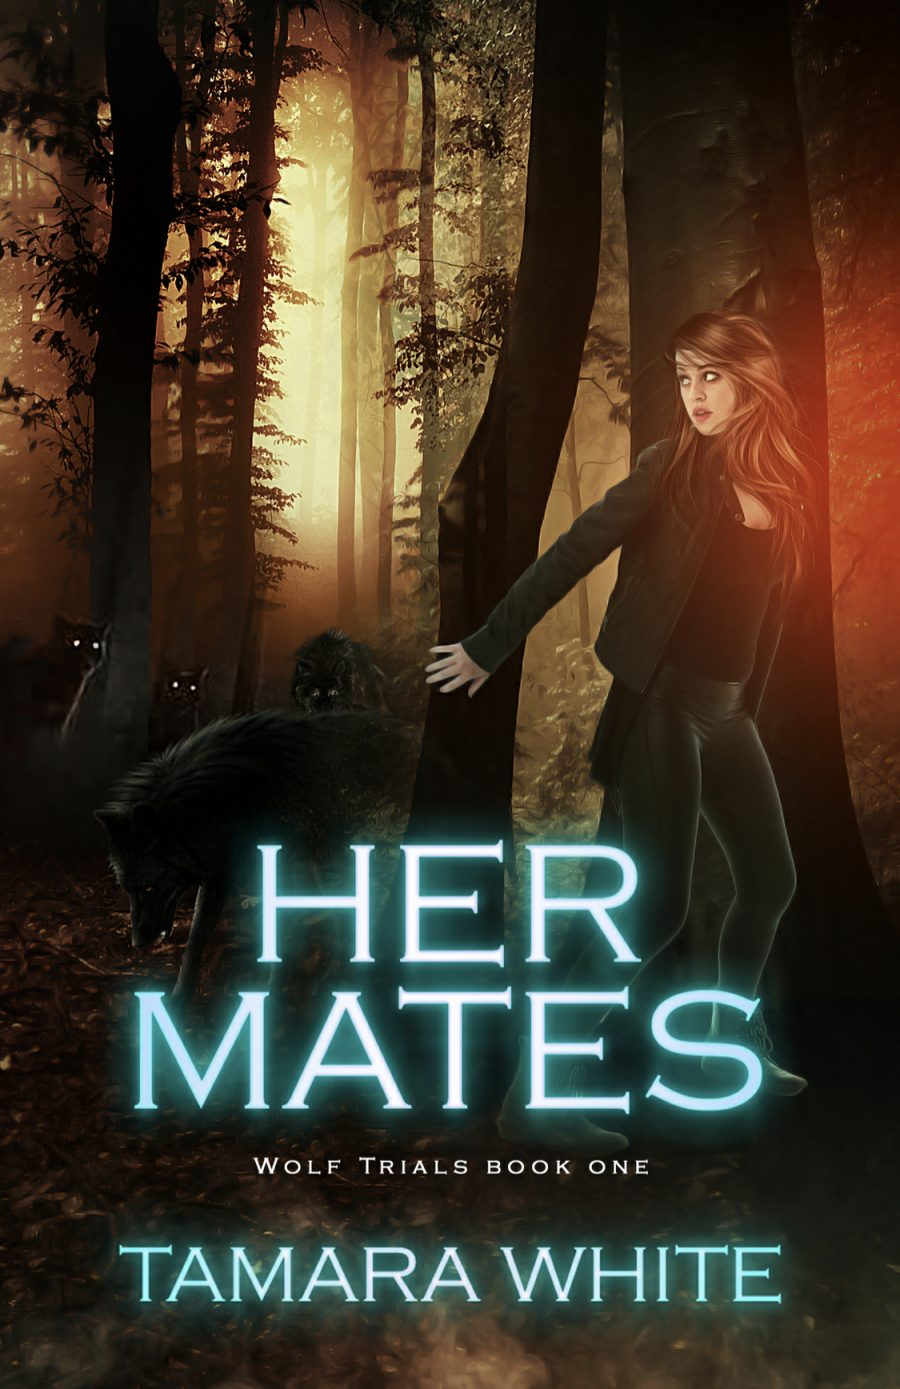 Her Mates (Wolf Trials - Book 1) by Tamara White - A Book Review #BookReview #3Stars #Revision #SlowBurn #RH #PNR #Shifters #KindleUnlimited #KU